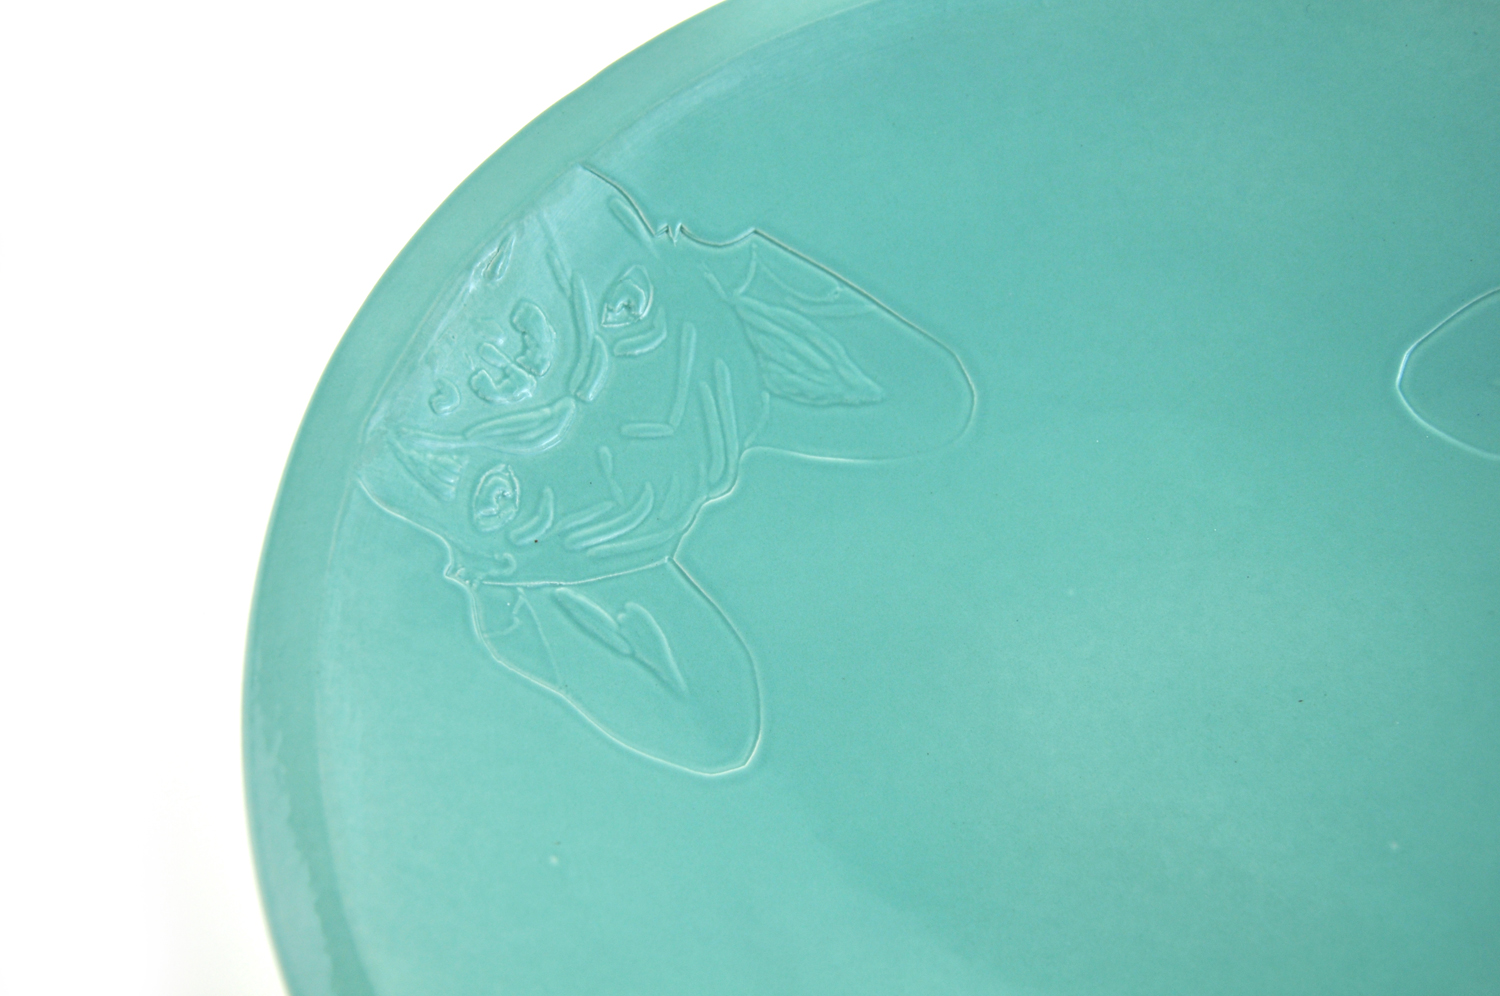 The French bulldog pastel mint series